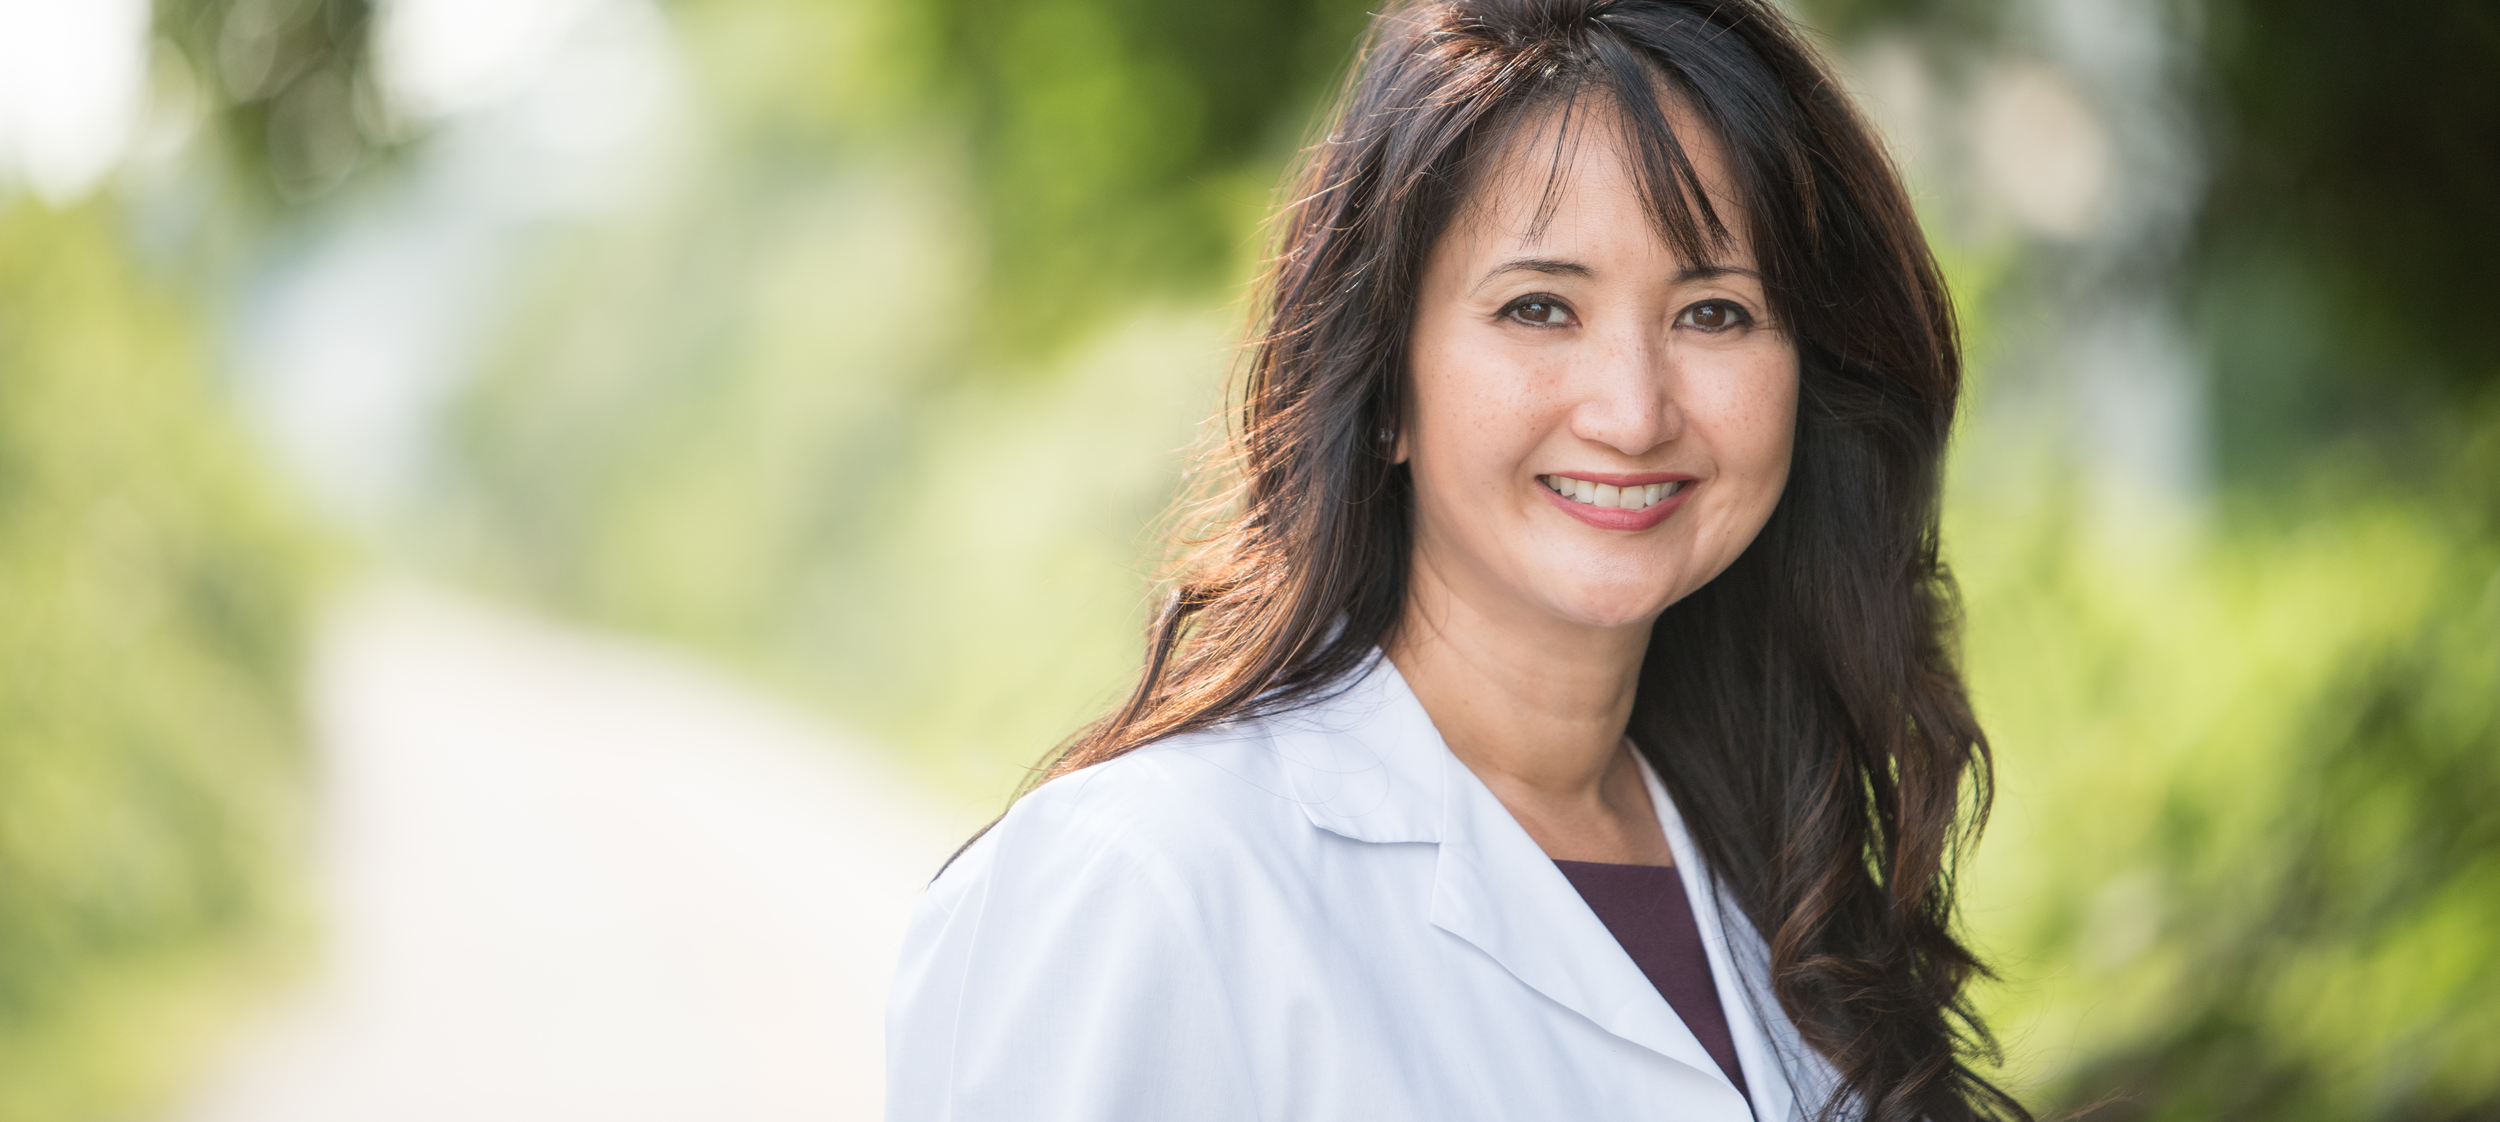 Dr. Diane Pham, DMD, is the owner and founder of Capital Esthetics and Family Dentistry in the Town of Vienna in Northern Virginia.